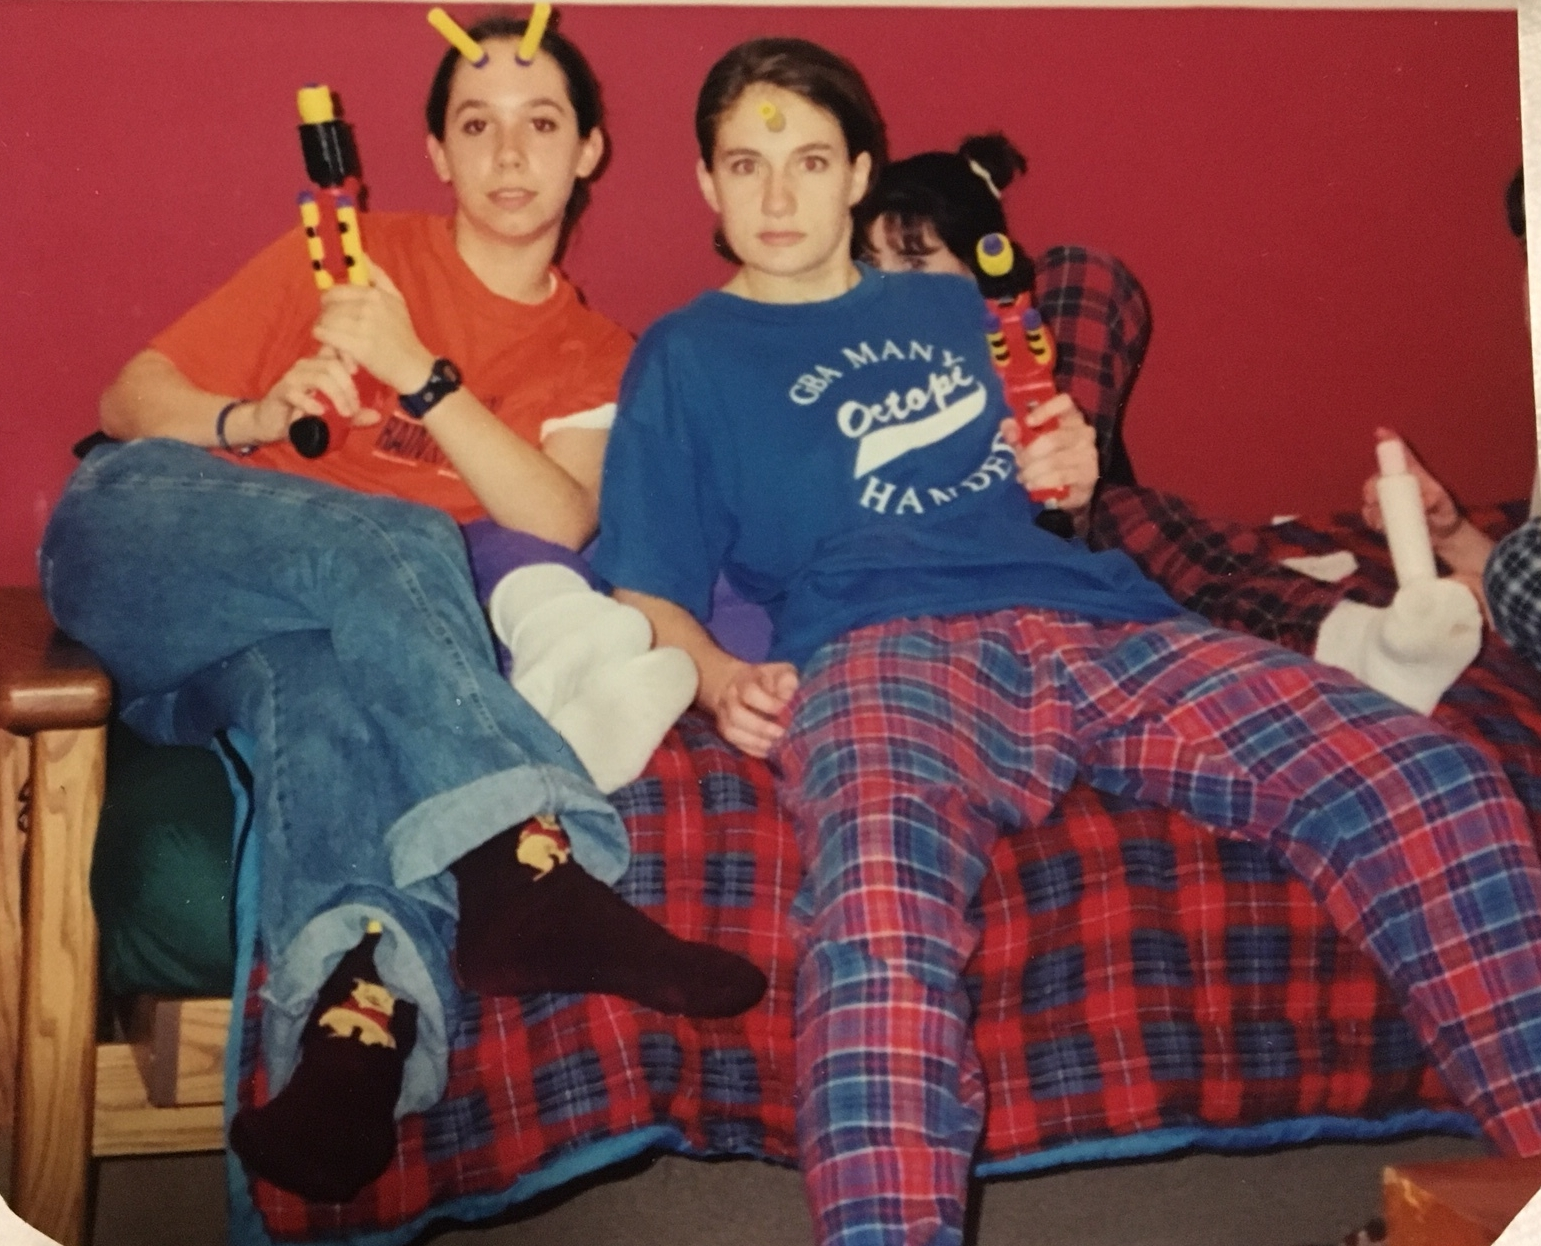 """Along with the hardcore Nerf player vibe we are giving off, take note of the other things that make this photo stunning, including Elizabeth's Winnie-the-Poo socks and my team shirt from the only softball team I've ever played on, """"The Many-Handed Octopi."""""""